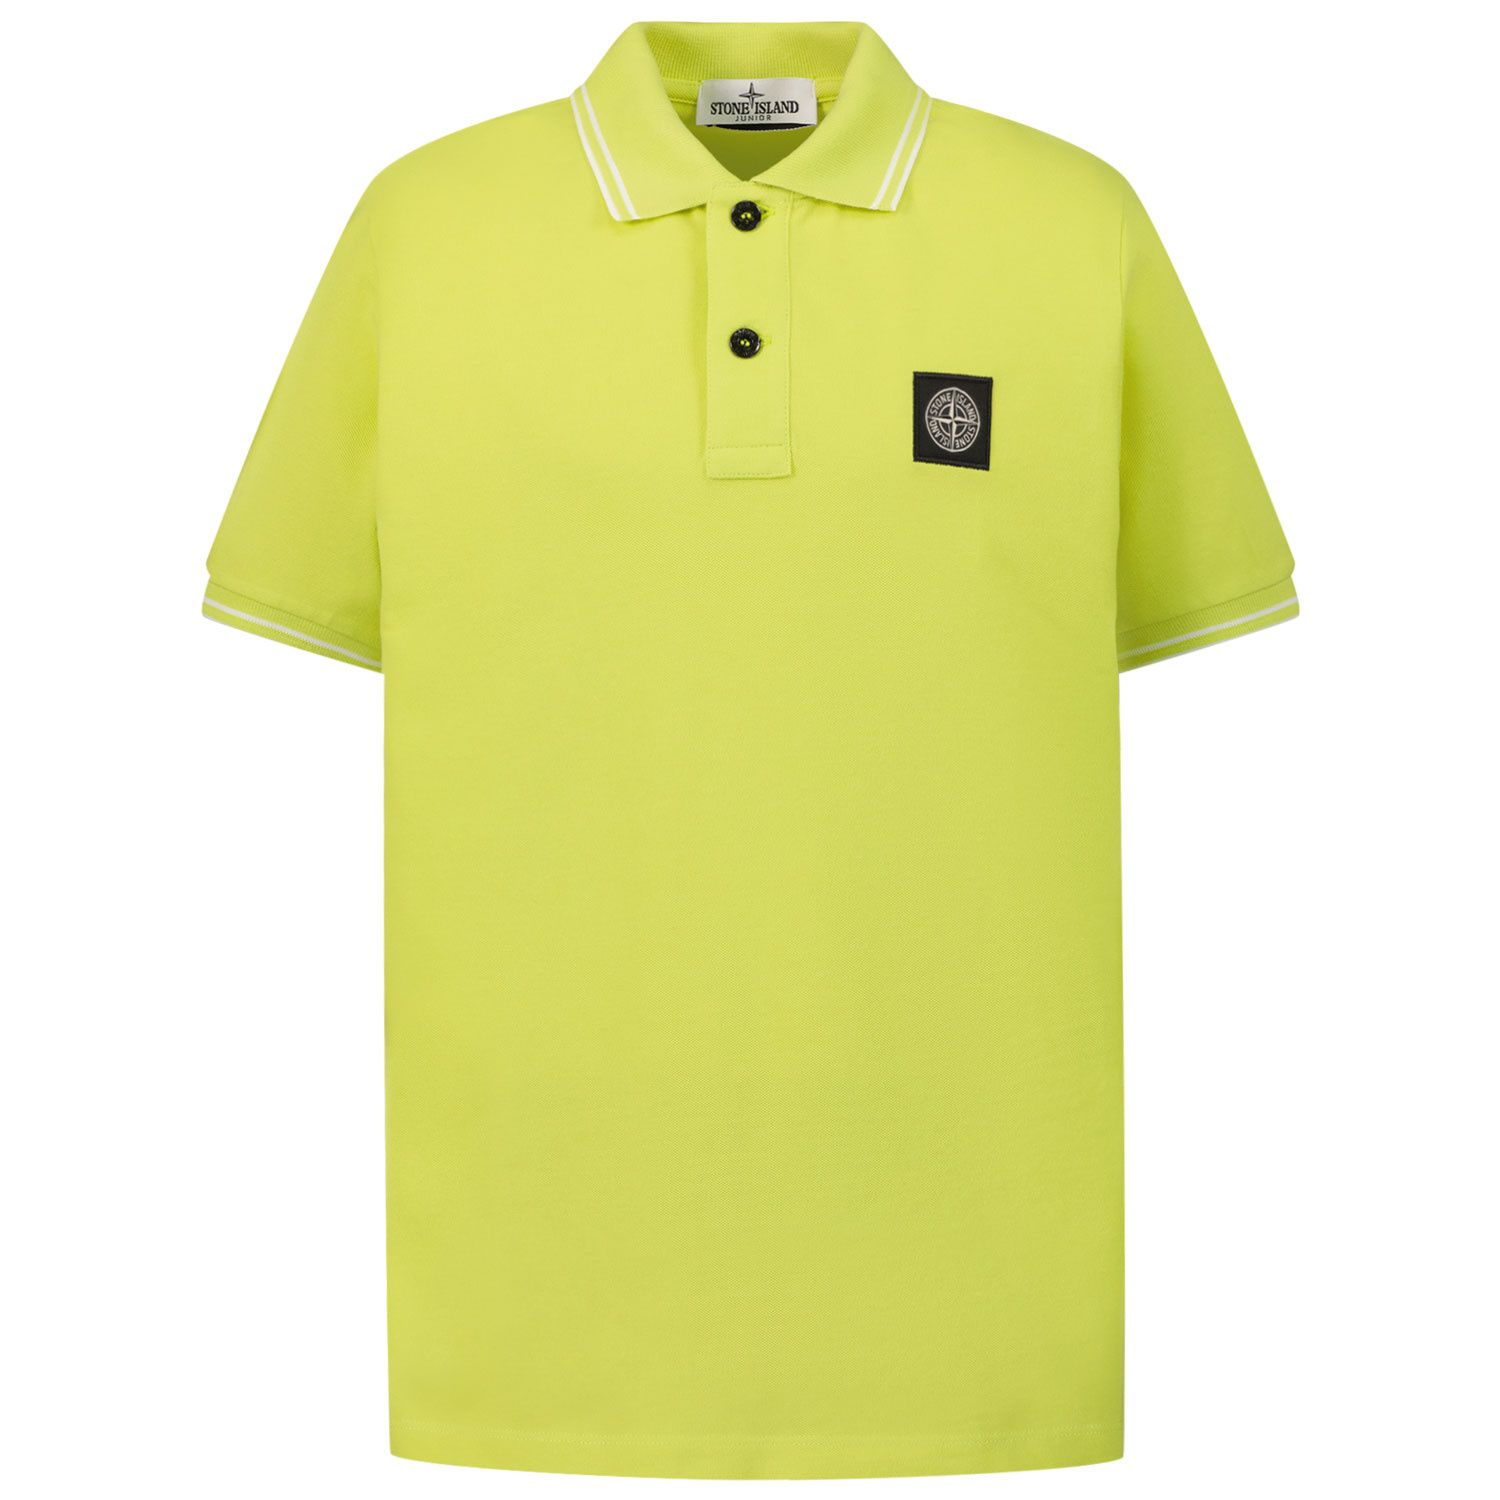 Picture of Stone Island 21348 kids polo shirt lime